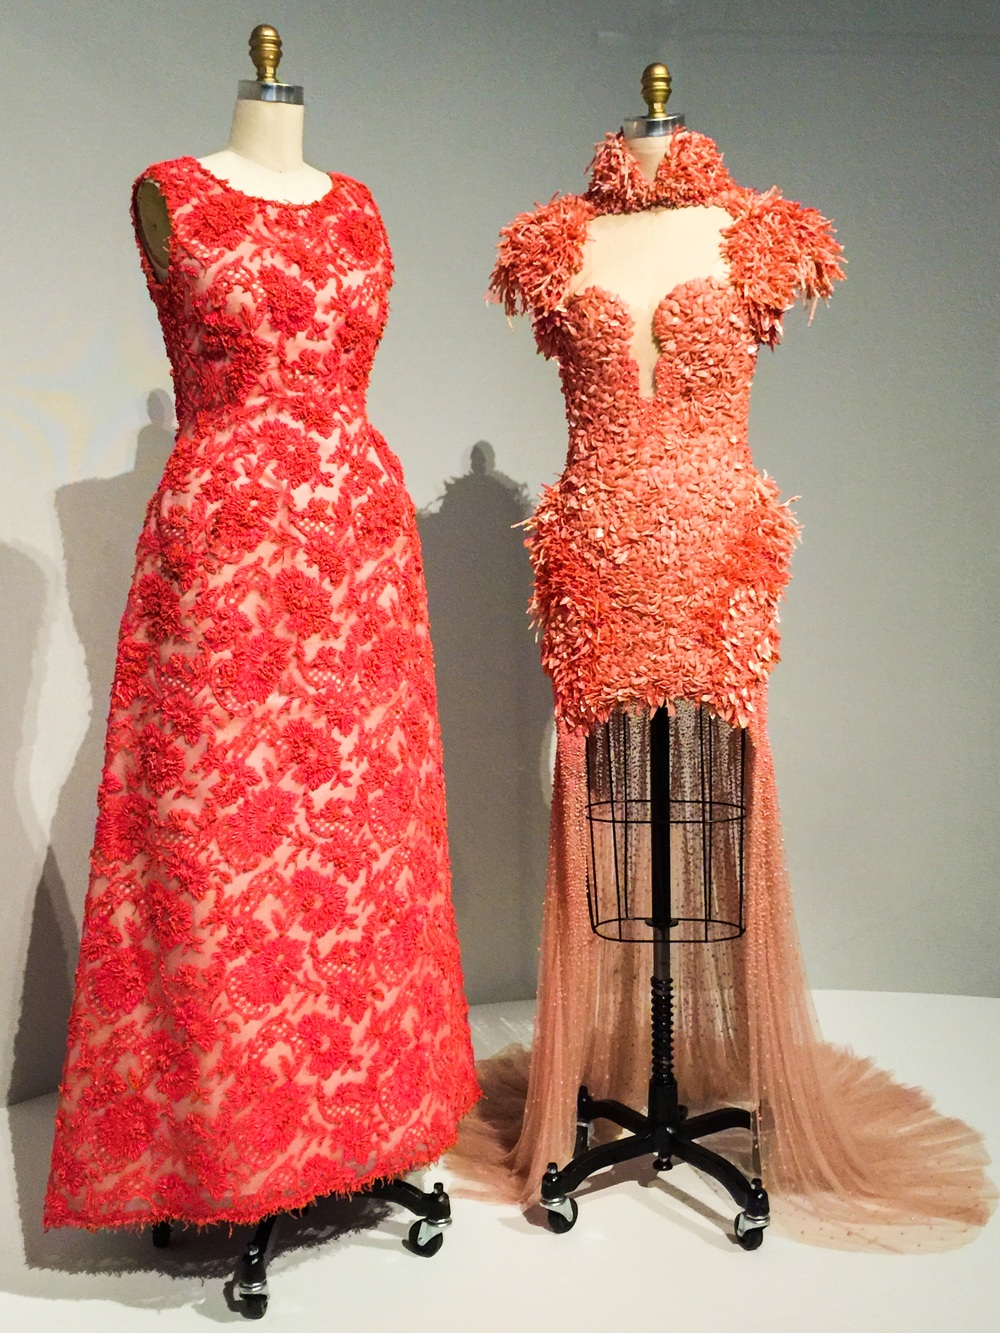 Hubert de Givenchy for House of Givenchy, Evening dress 1963, Haute Couture